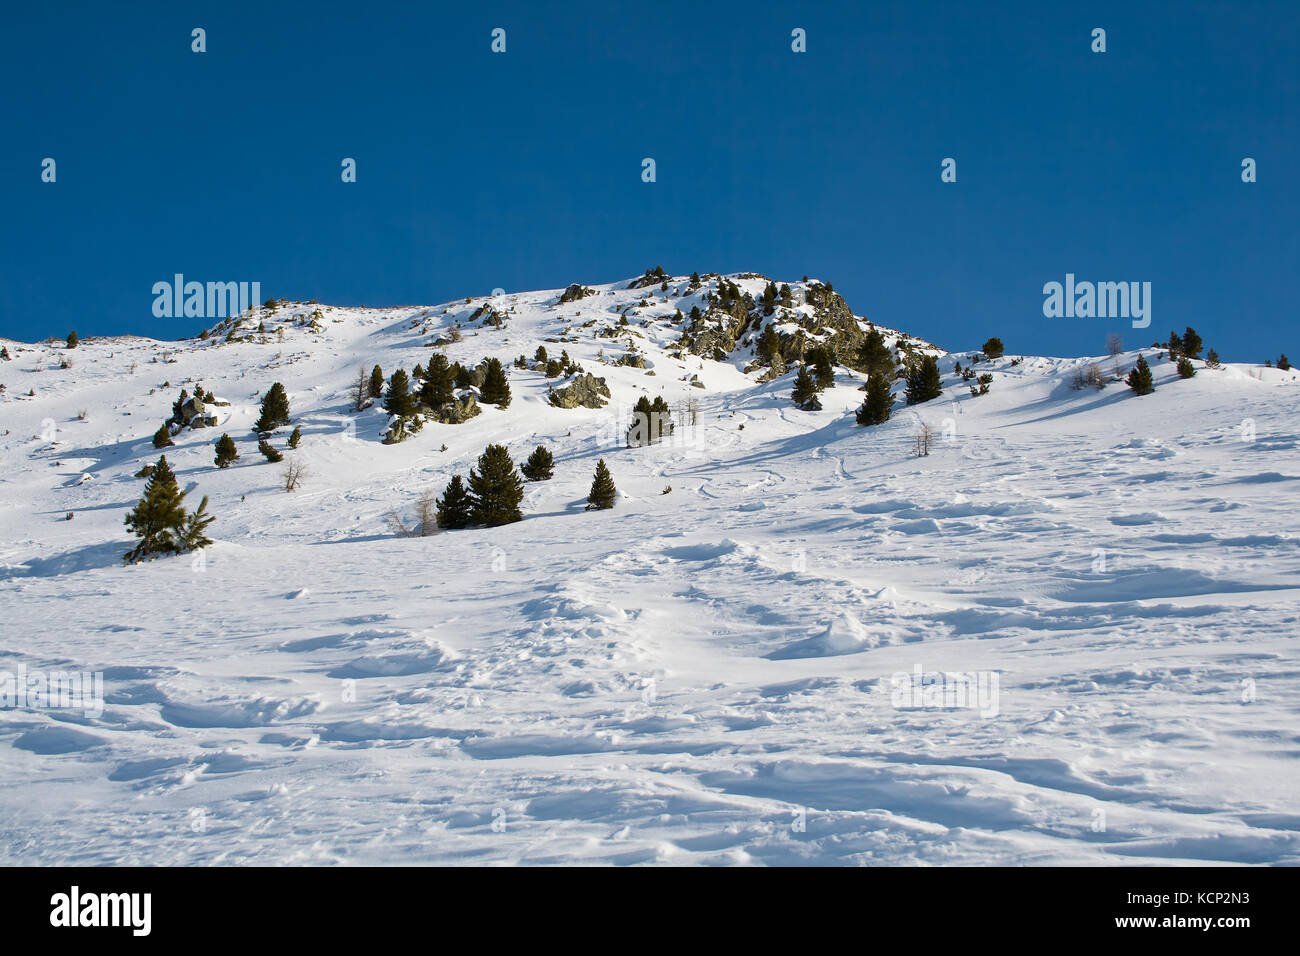 Spruces on a snowy slope of the mountain - Stock Image